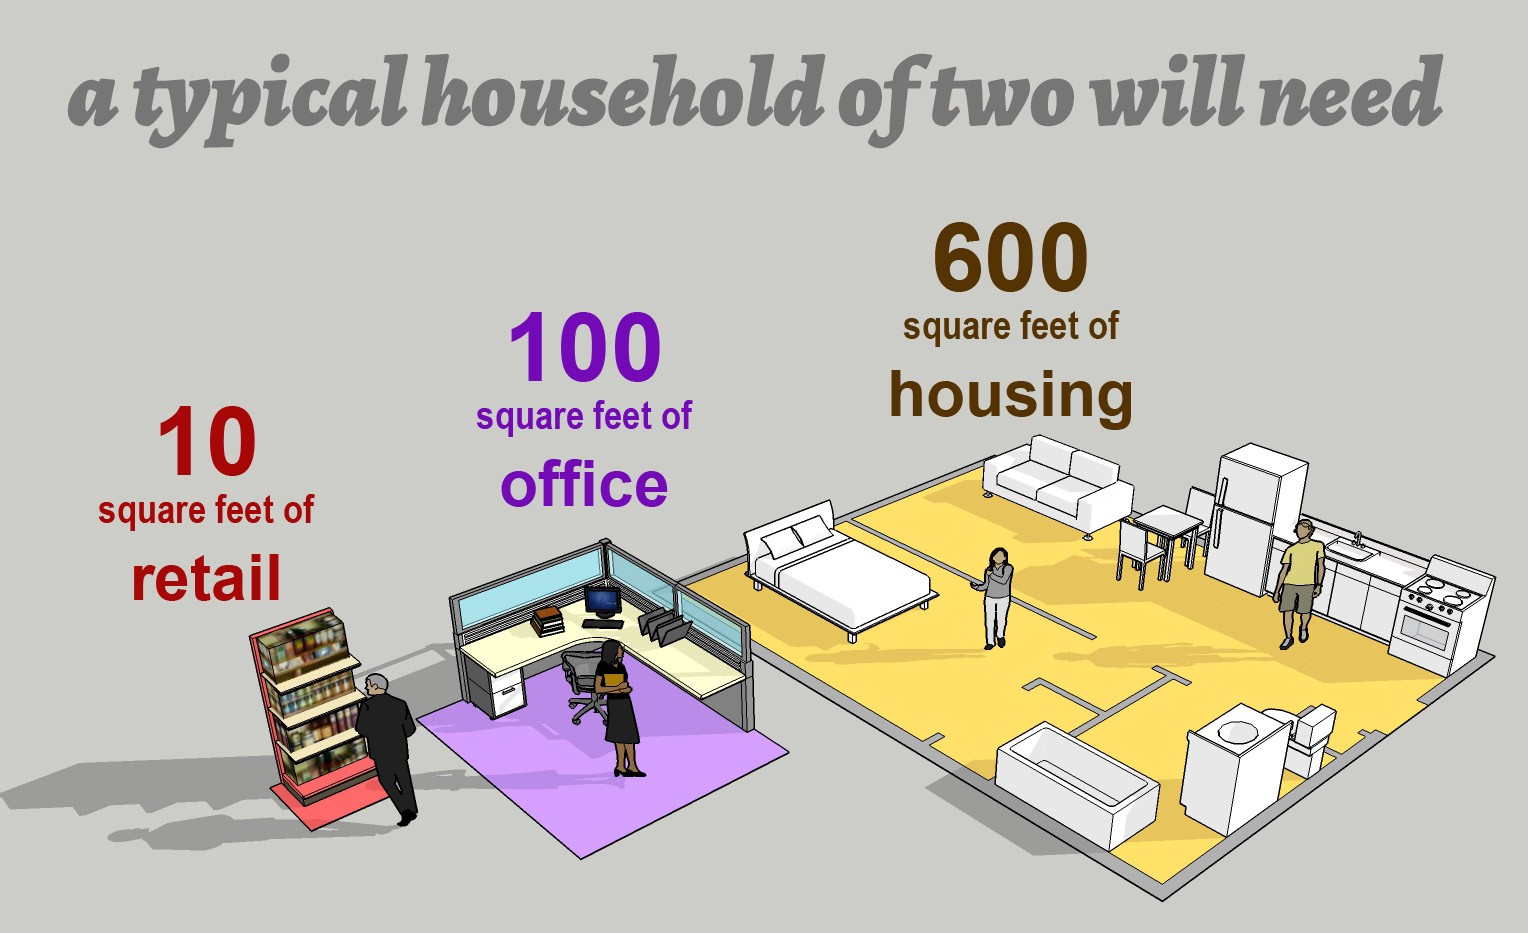 a typical household of two will need 10 sq ft of retail, 100 sq ft of office, 600 sq ft of housing